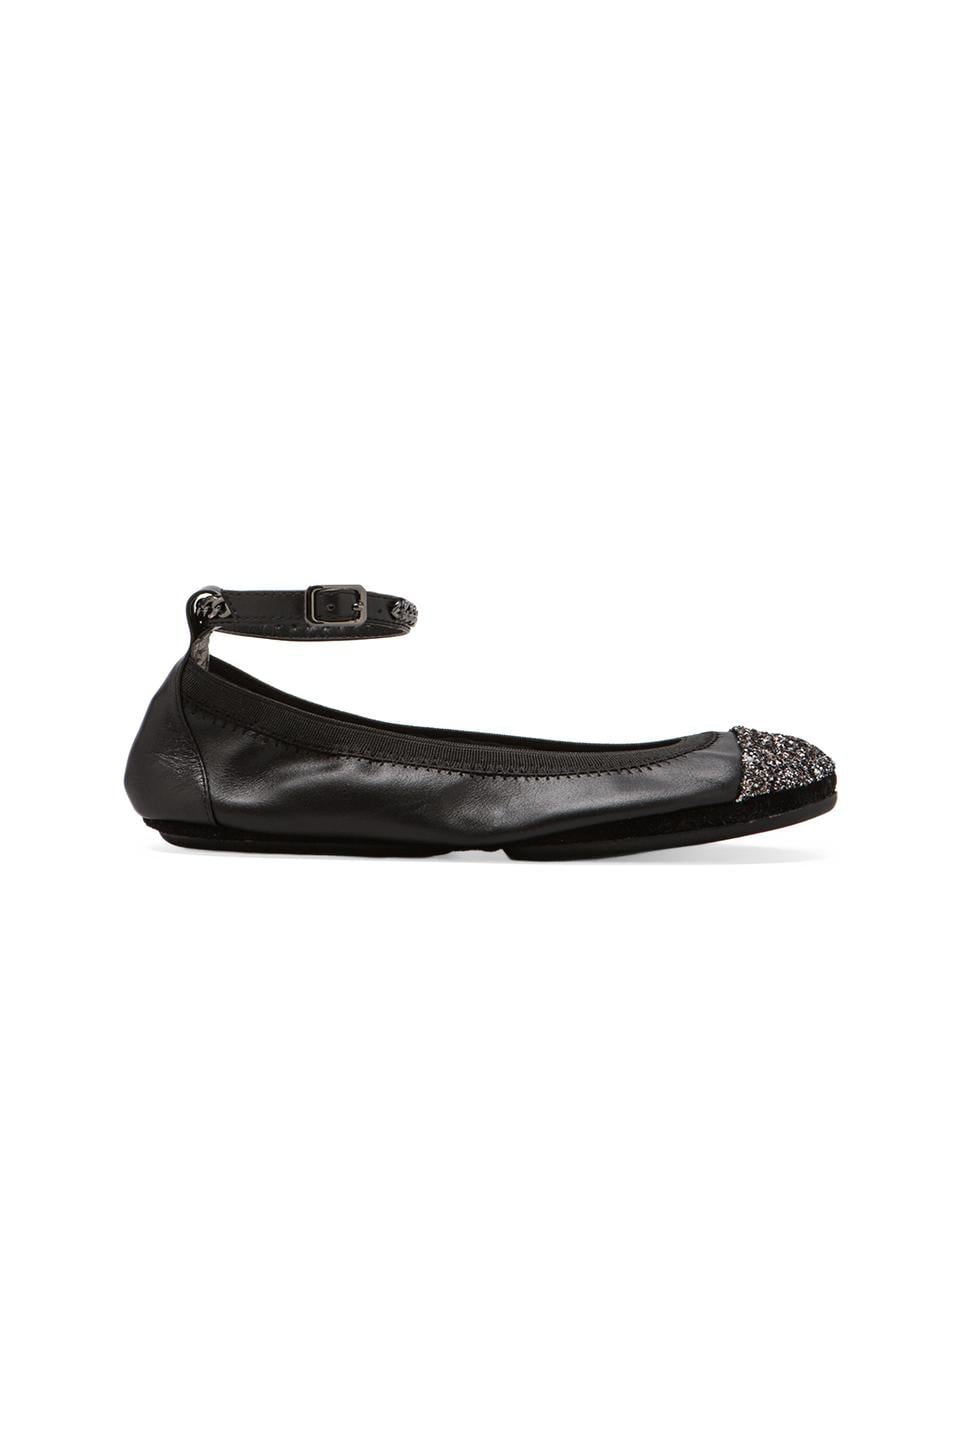 Yosi Samra Abbey Two Toned Glitter Flat in Black/Stardust